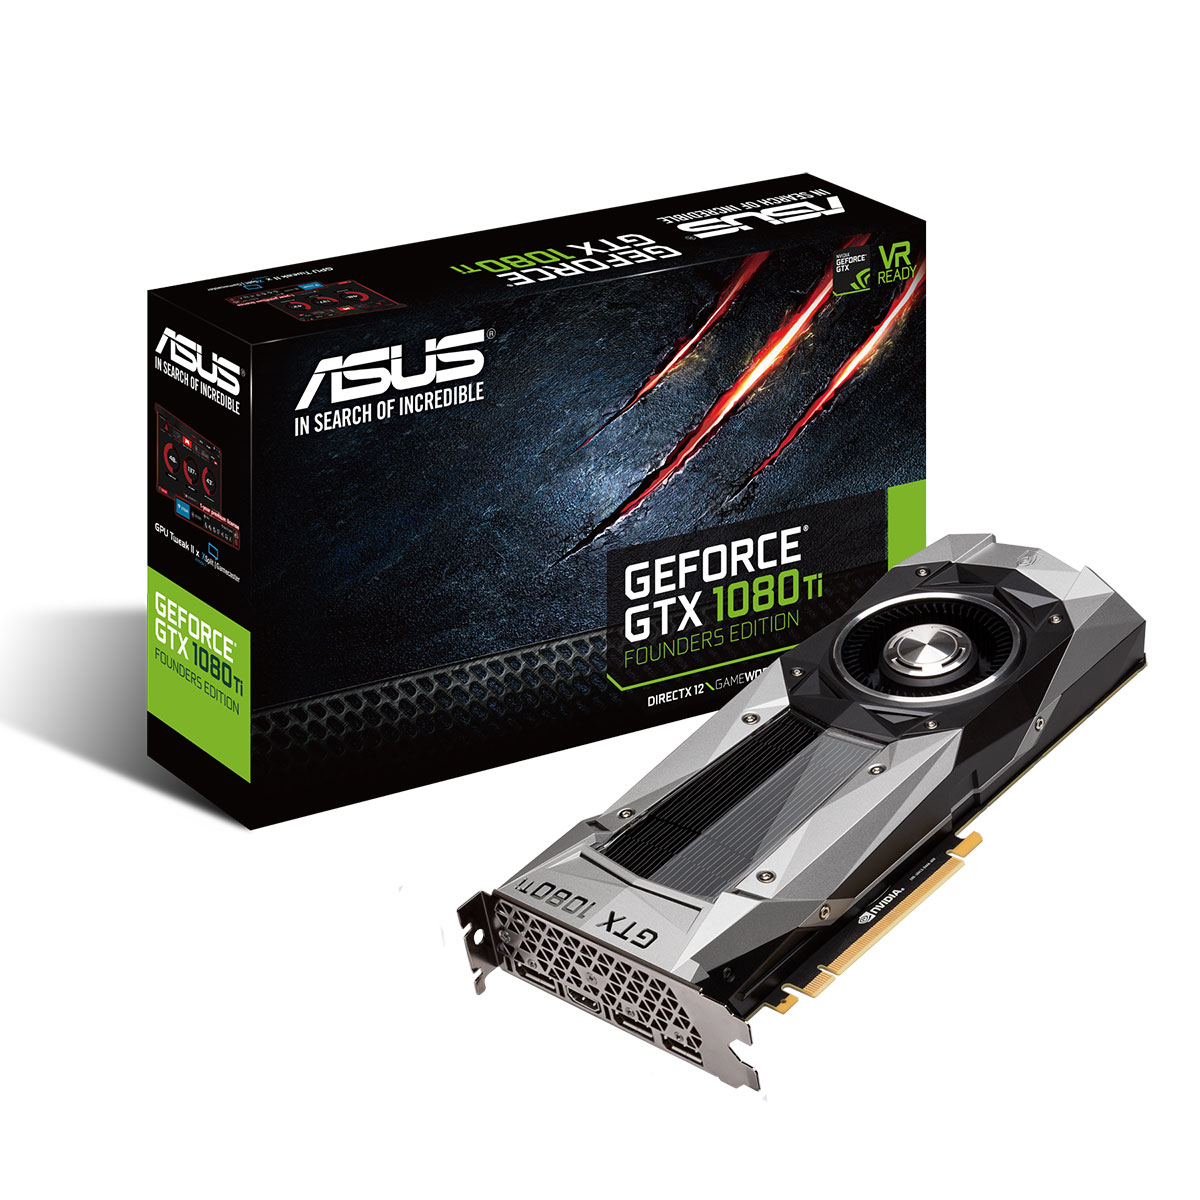 asus geforce gtx 1080 ti founders edition 11 gb carte graphique asus sur. Black Bedroom Furniture Sets. Home Design Ideas